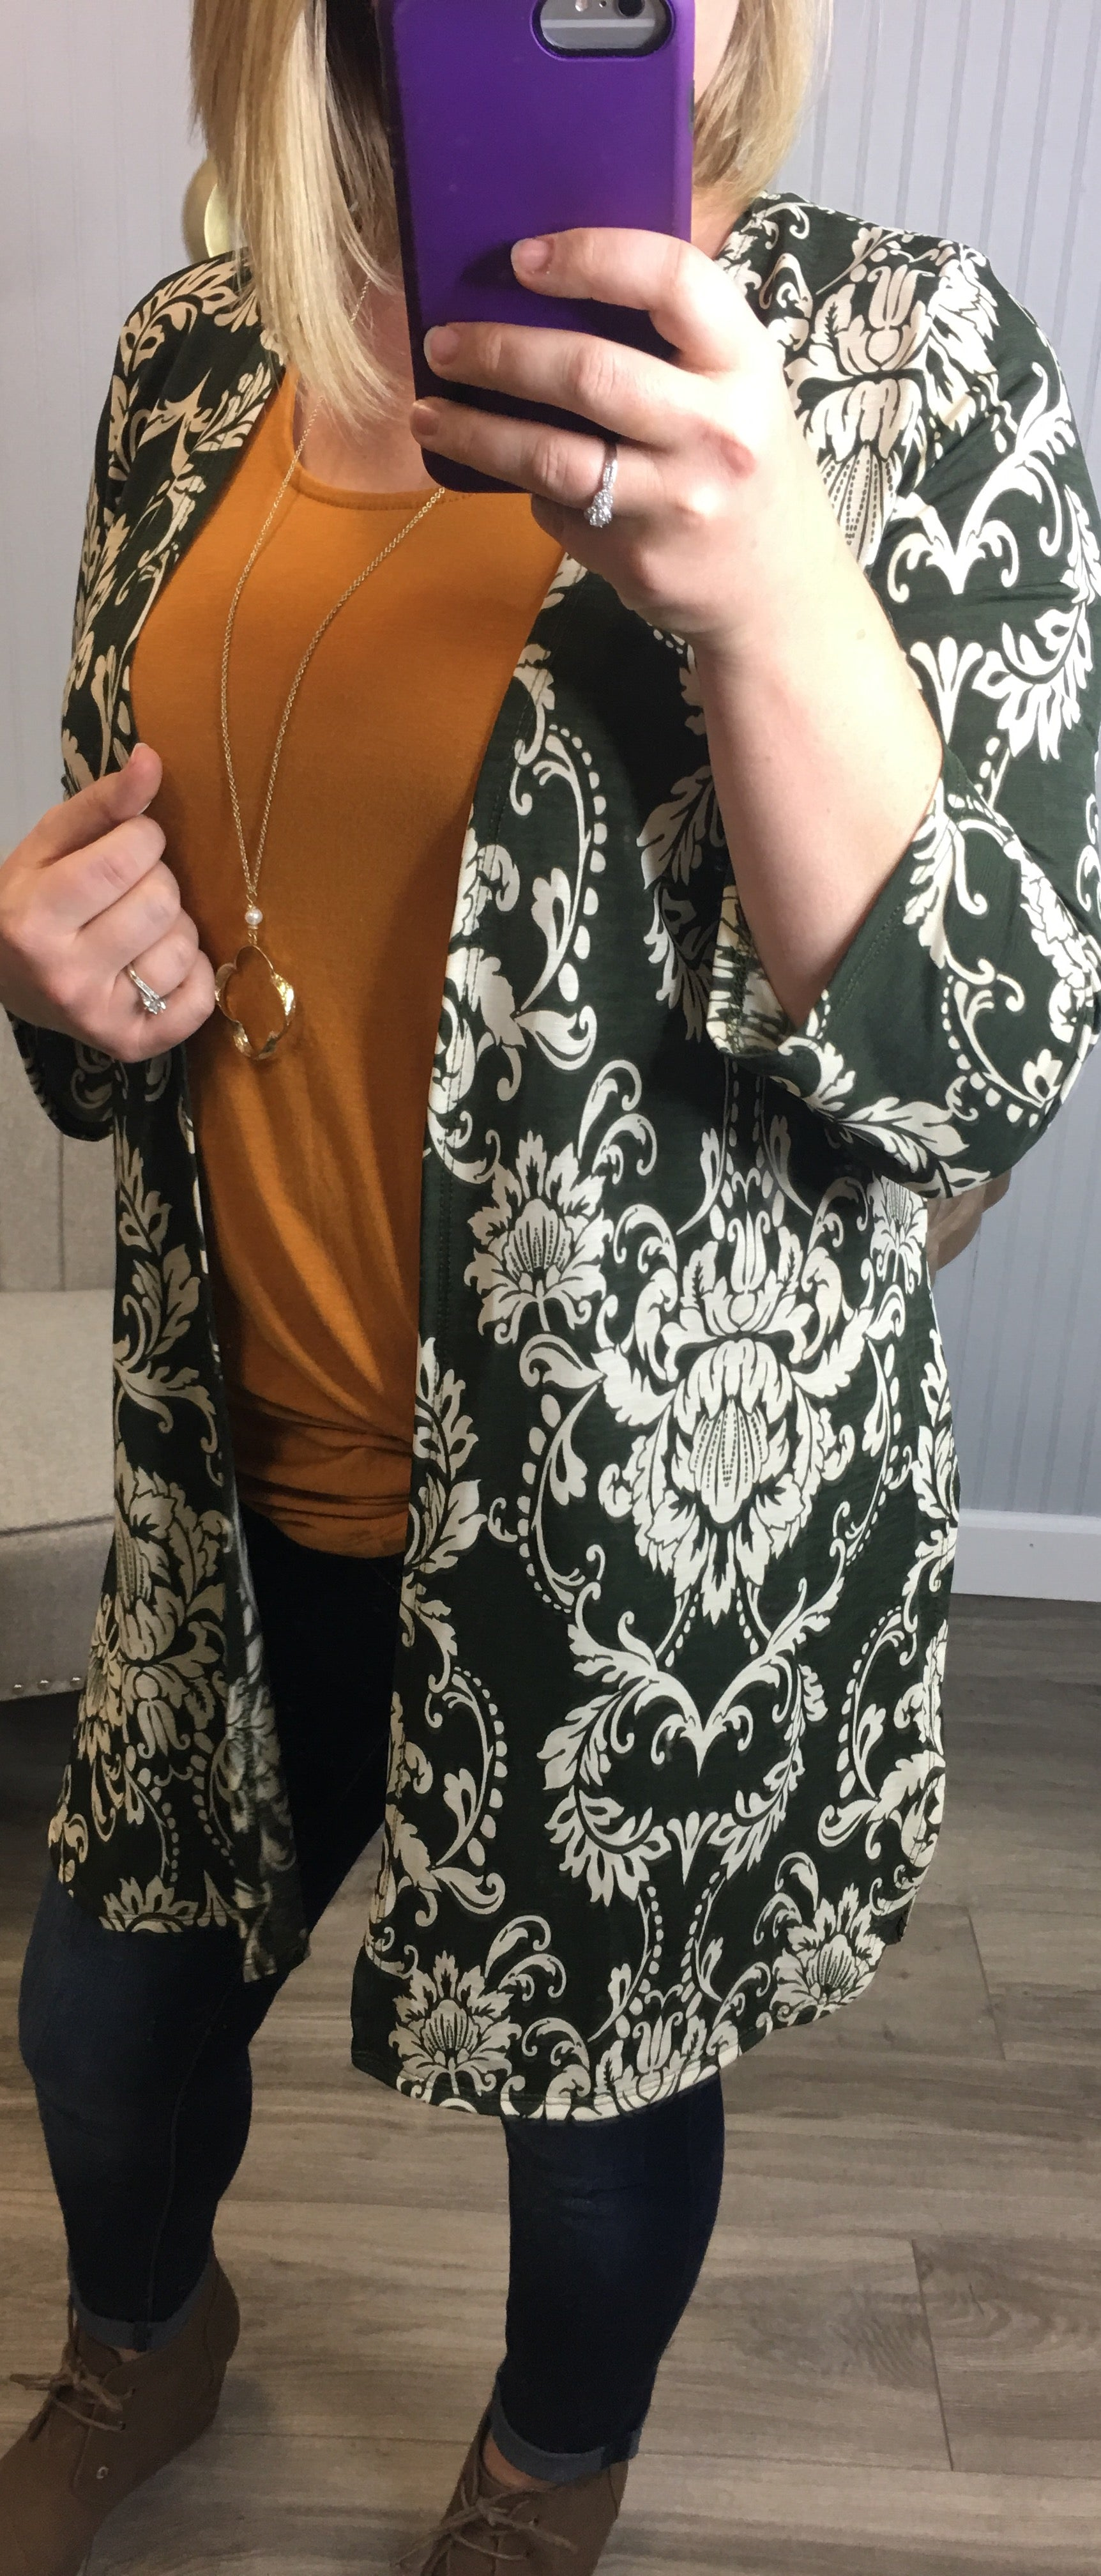 Damask Sleek Cardigans